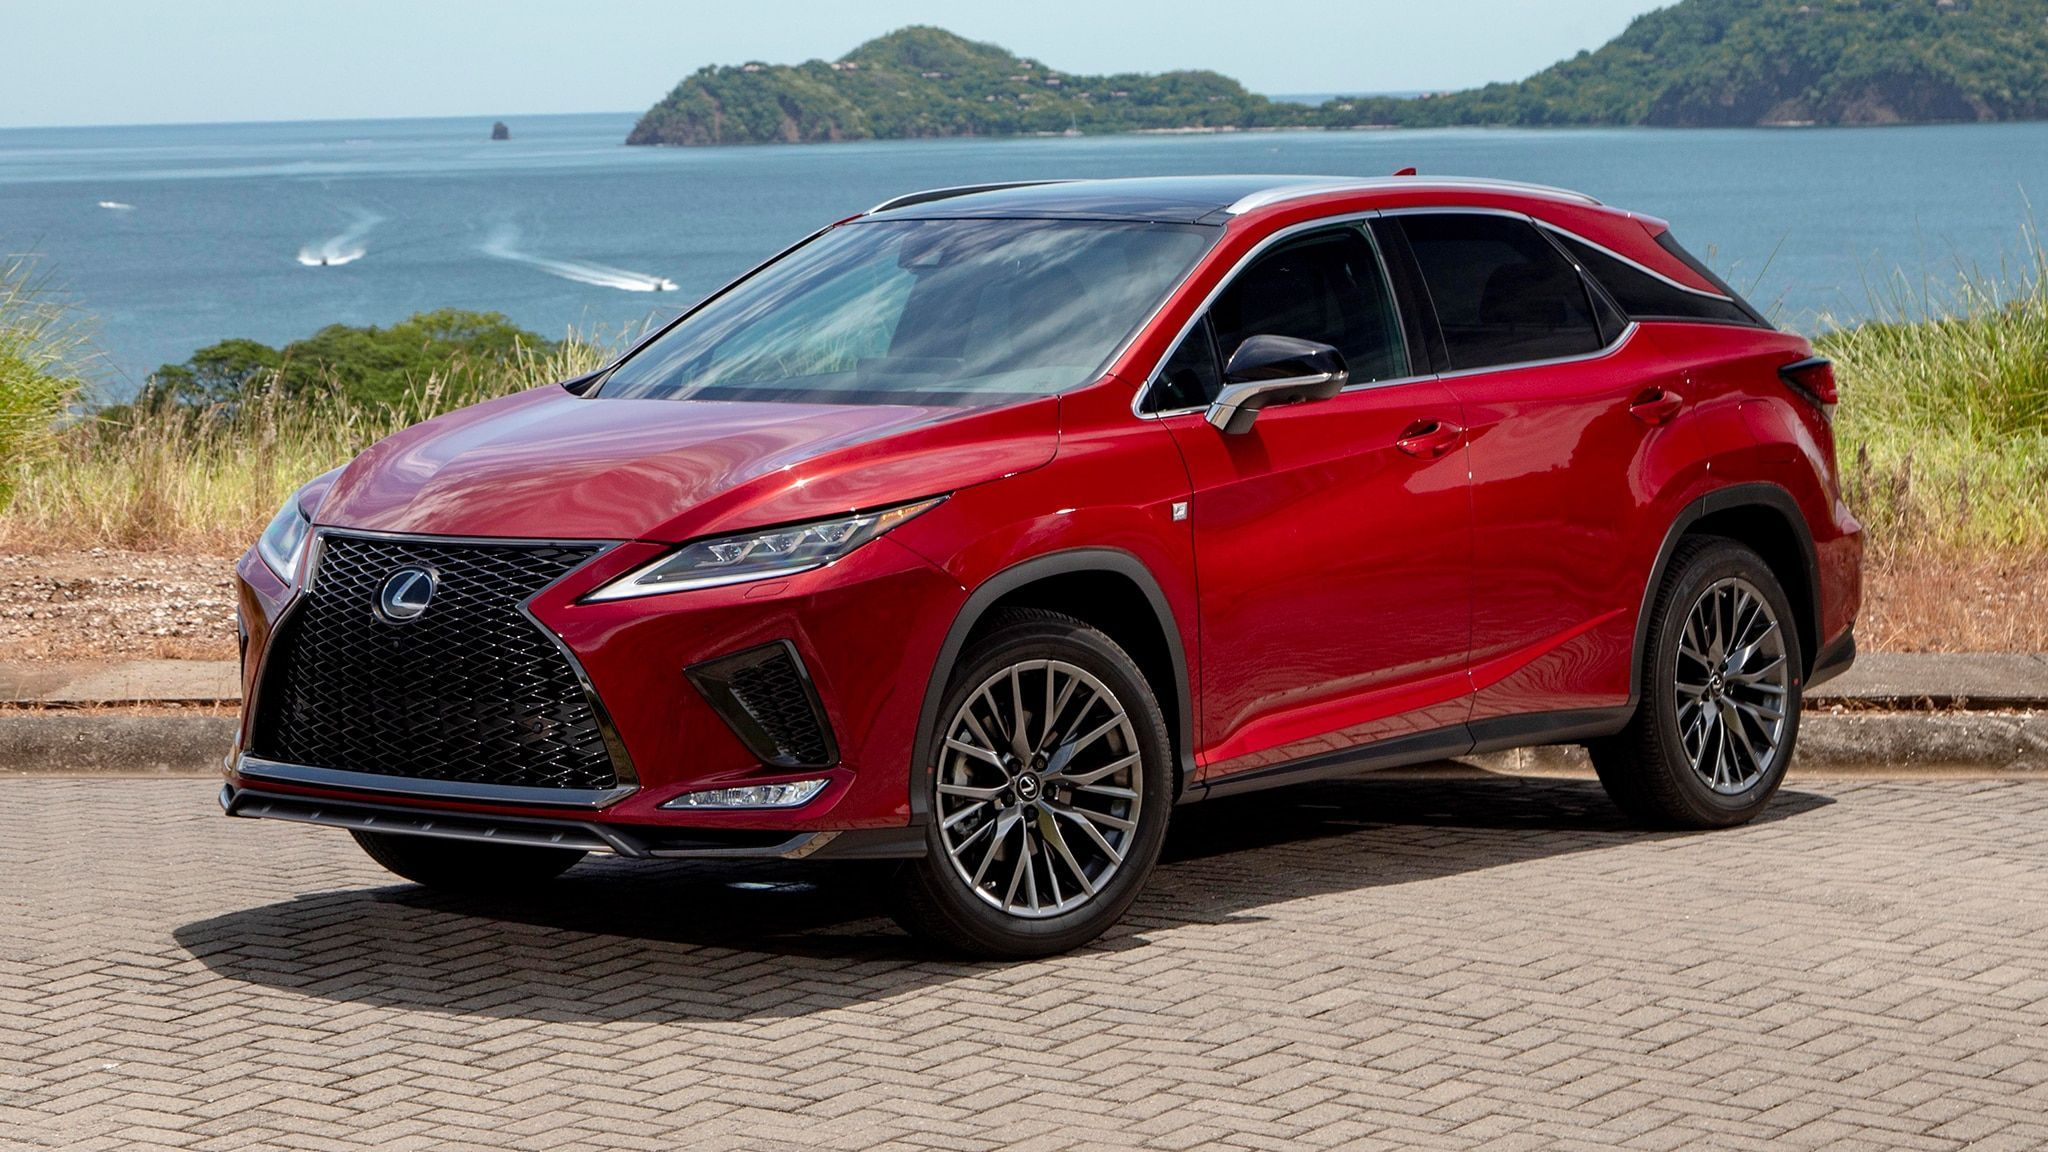 Car Industry Latest News Updates Autodeals Pk In 2020 Lexus Rx 350 Lexus Suv Lexus